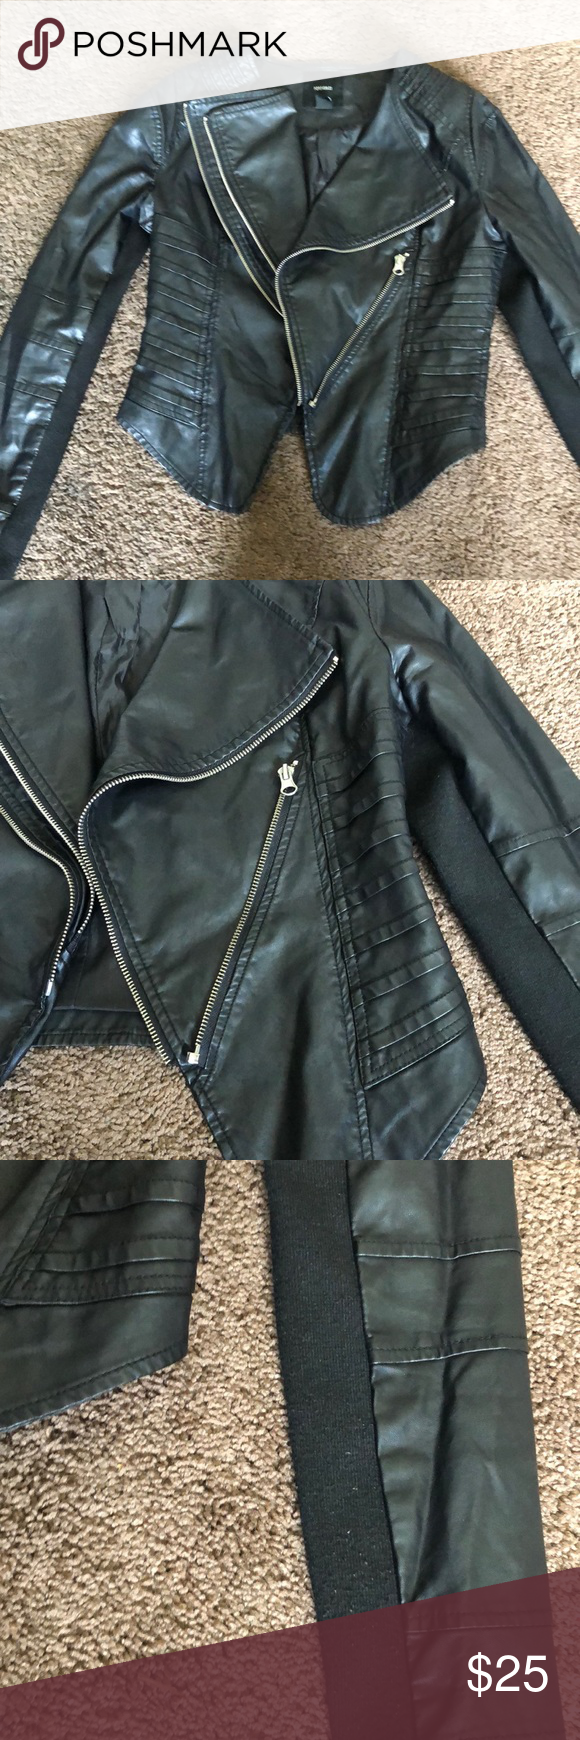 Forever 21 Faux Leather Jacket Faux Leather Jackets Black Faux Leather Jacket Leather Jacket [ 1740 x 580 Pixel ]